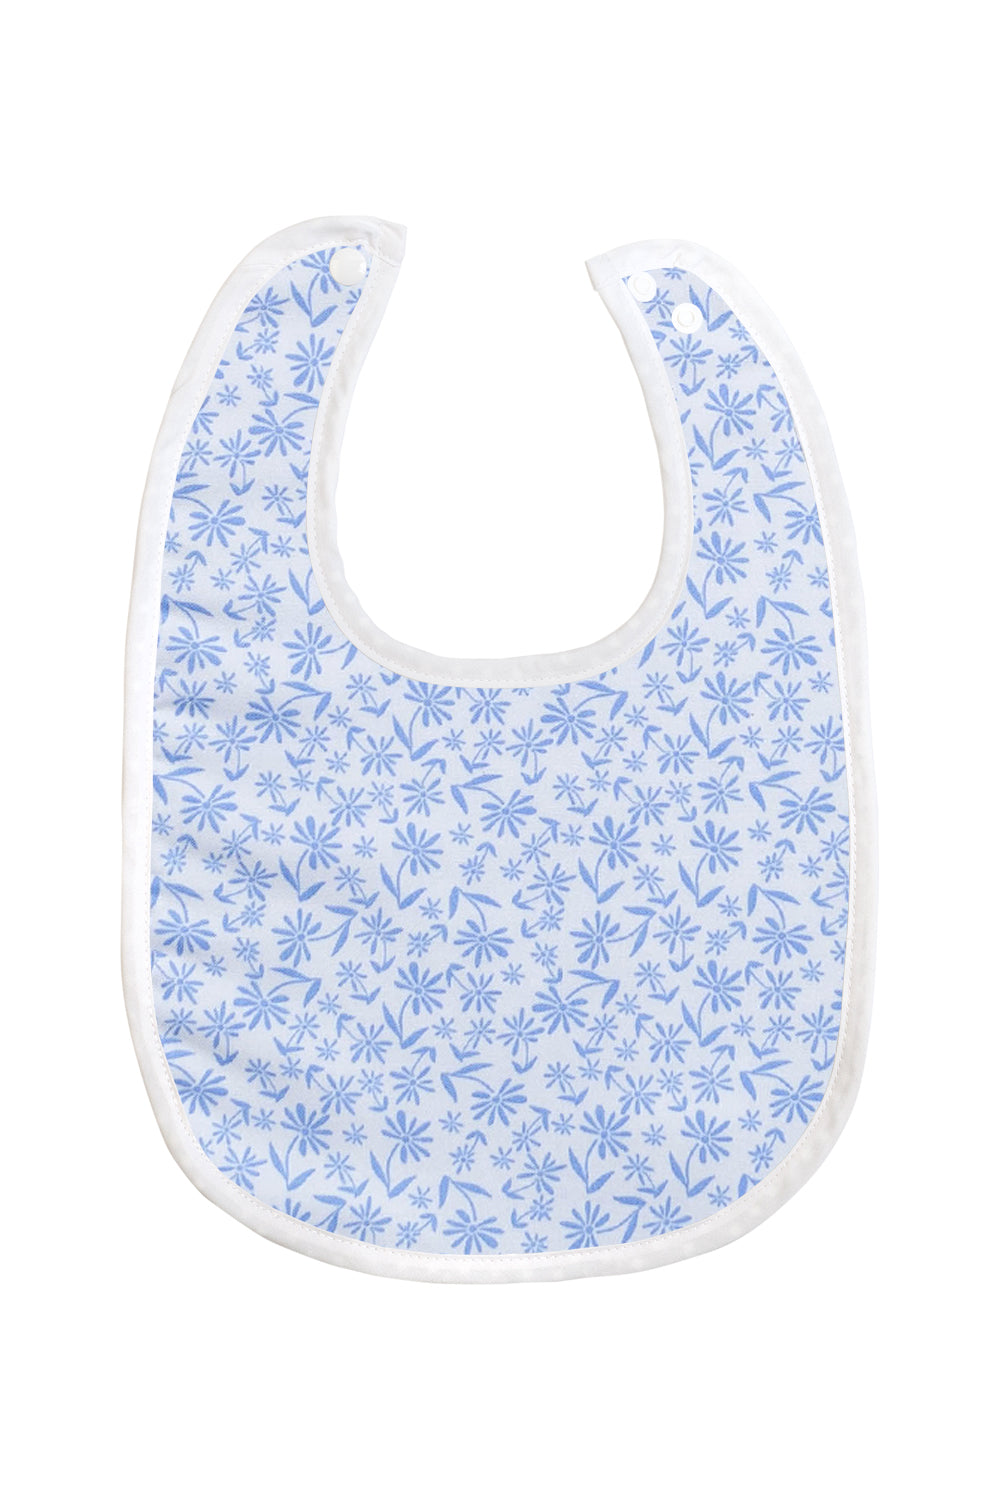 Bamboo Baby Bibs with Blue Floral Pattern